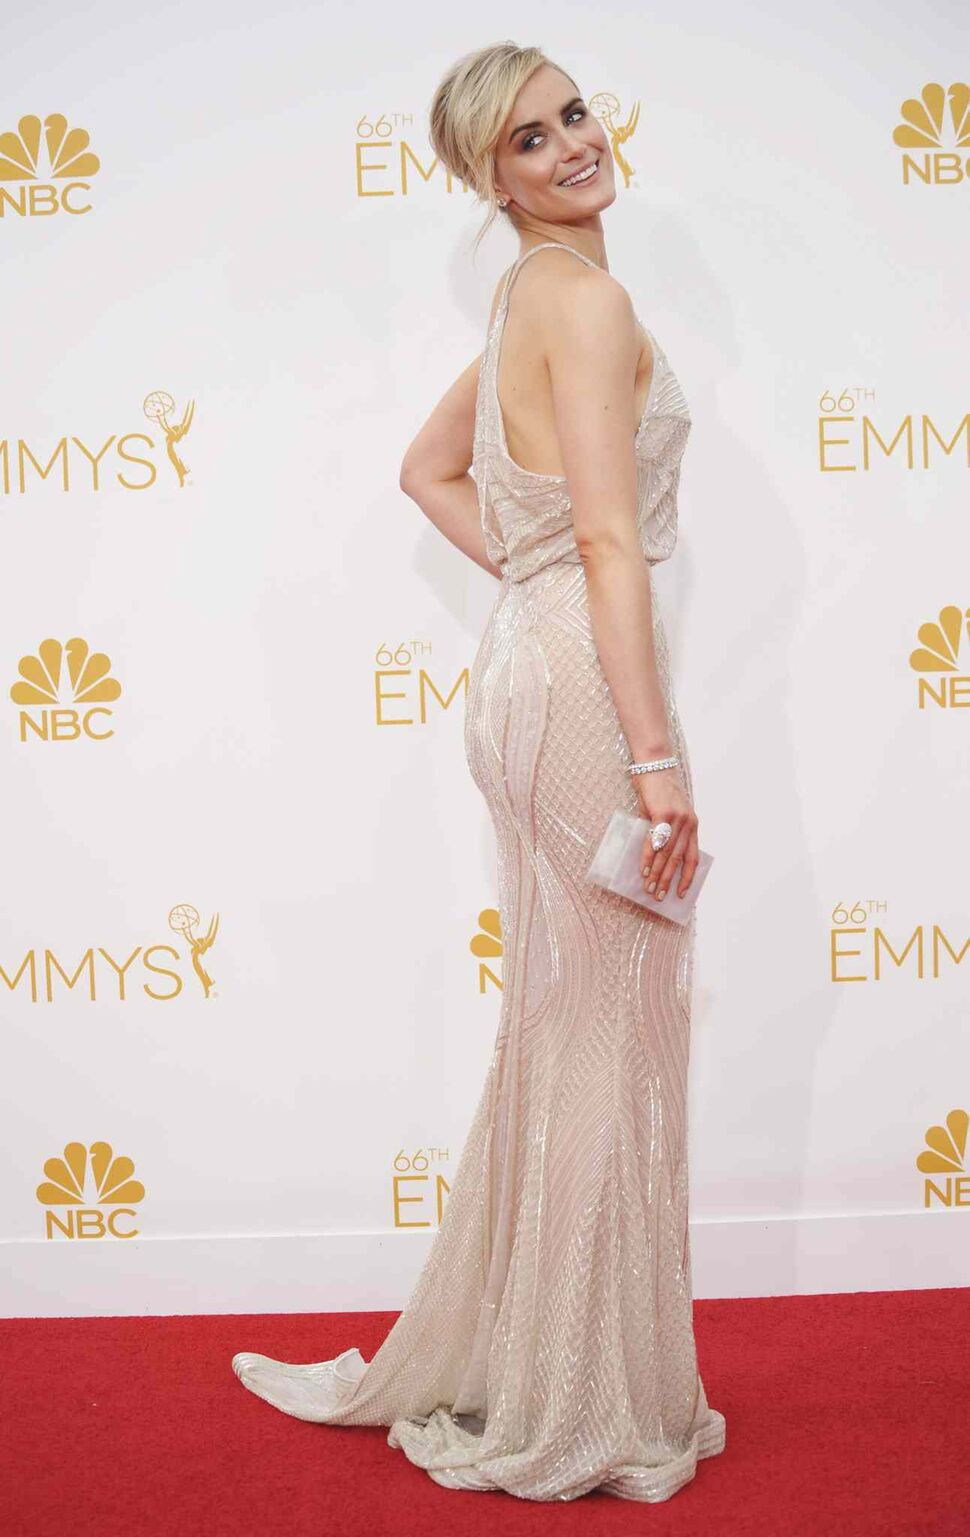 Taylor Schilling (Orange Is The New Black) arrives at the 66th Annual Primetime Emmy Awards at the Nokia Theatre L.A. Live on Monday. (Richard Shotwell/Invision/ The Associated Press)